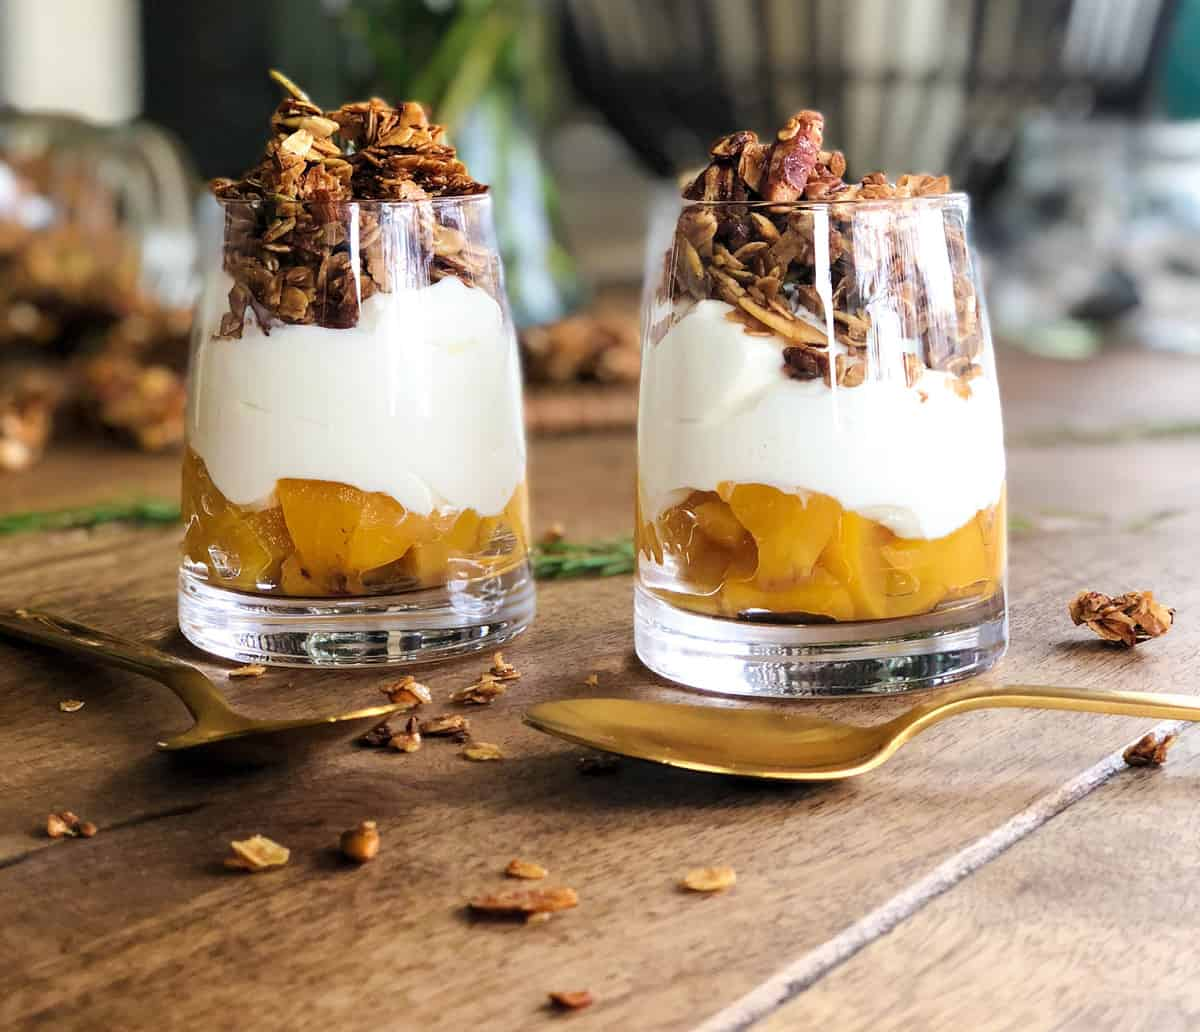 Peach Parfait using canned peaches! So yummy!